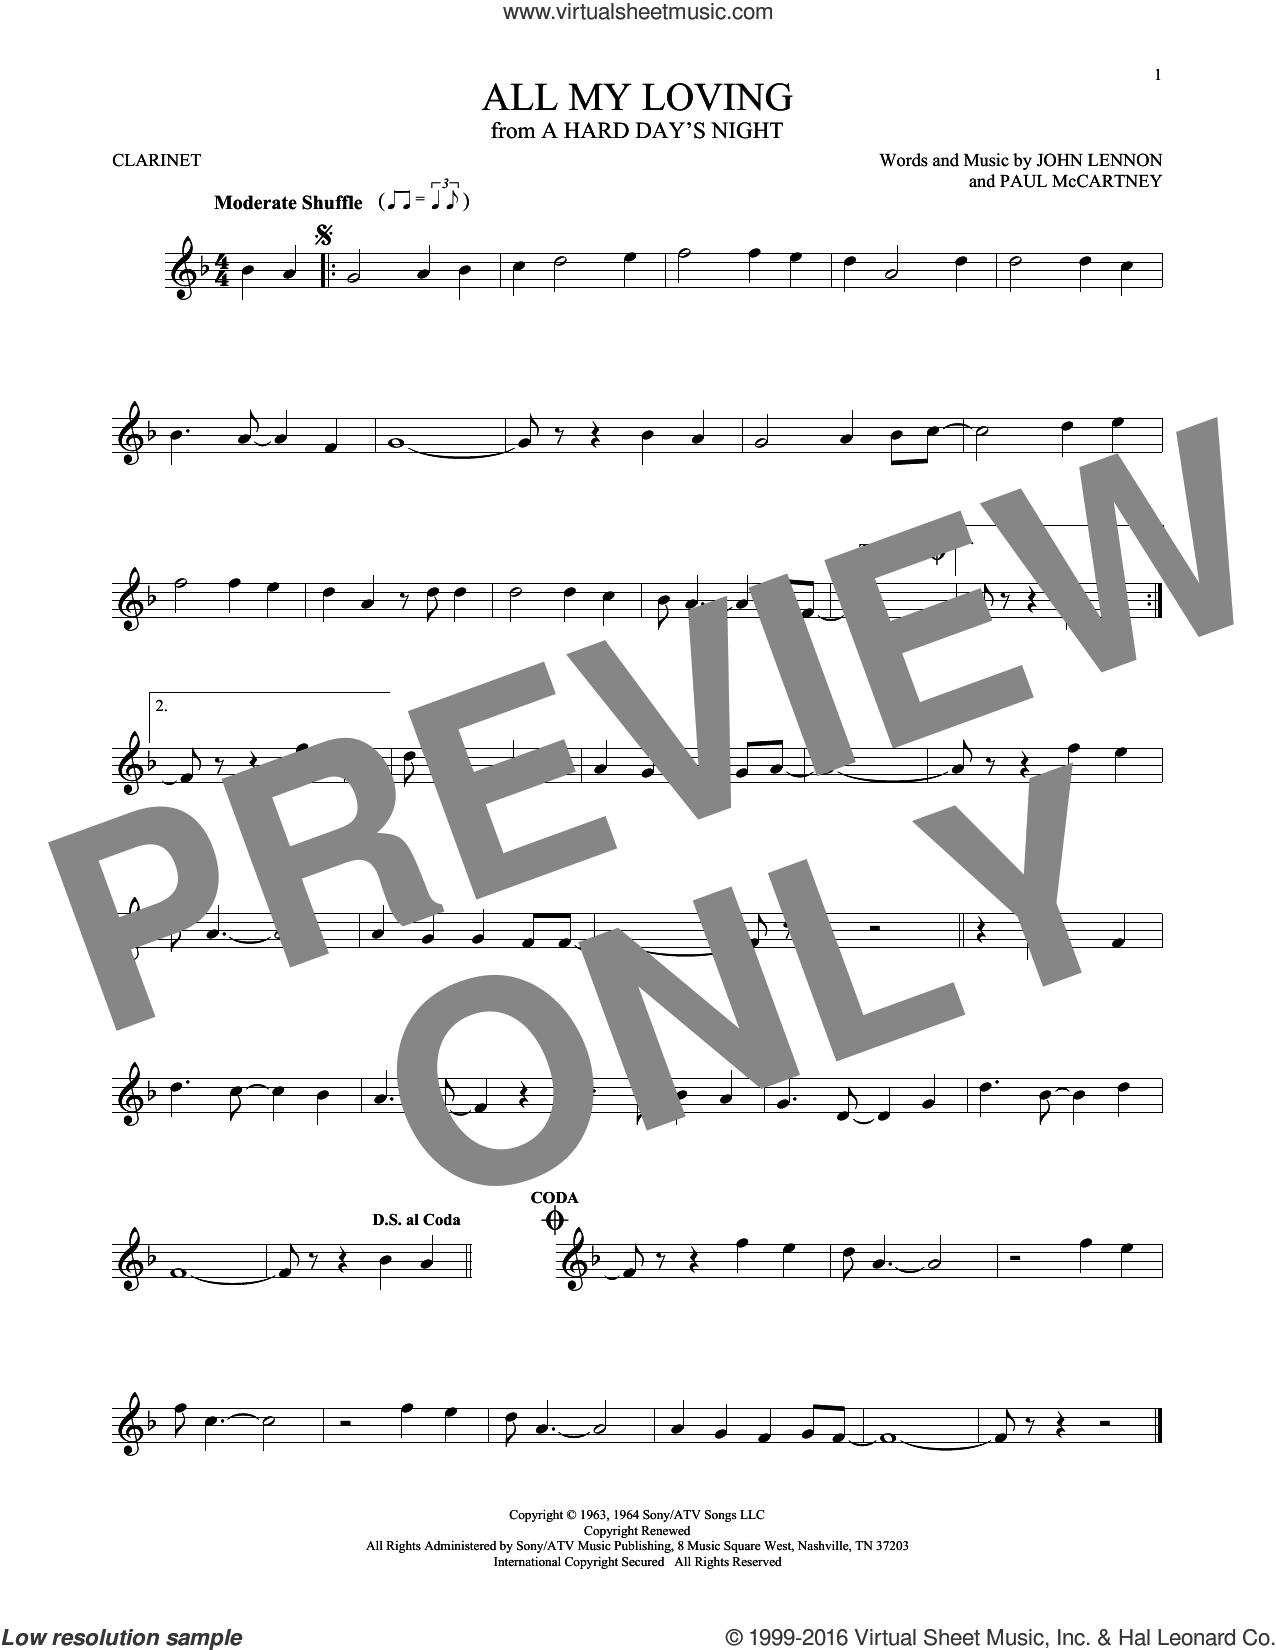 All My Loving sheet music for clarinet solo by The Beatles, John Lennon and Paul McCartney, intermediate